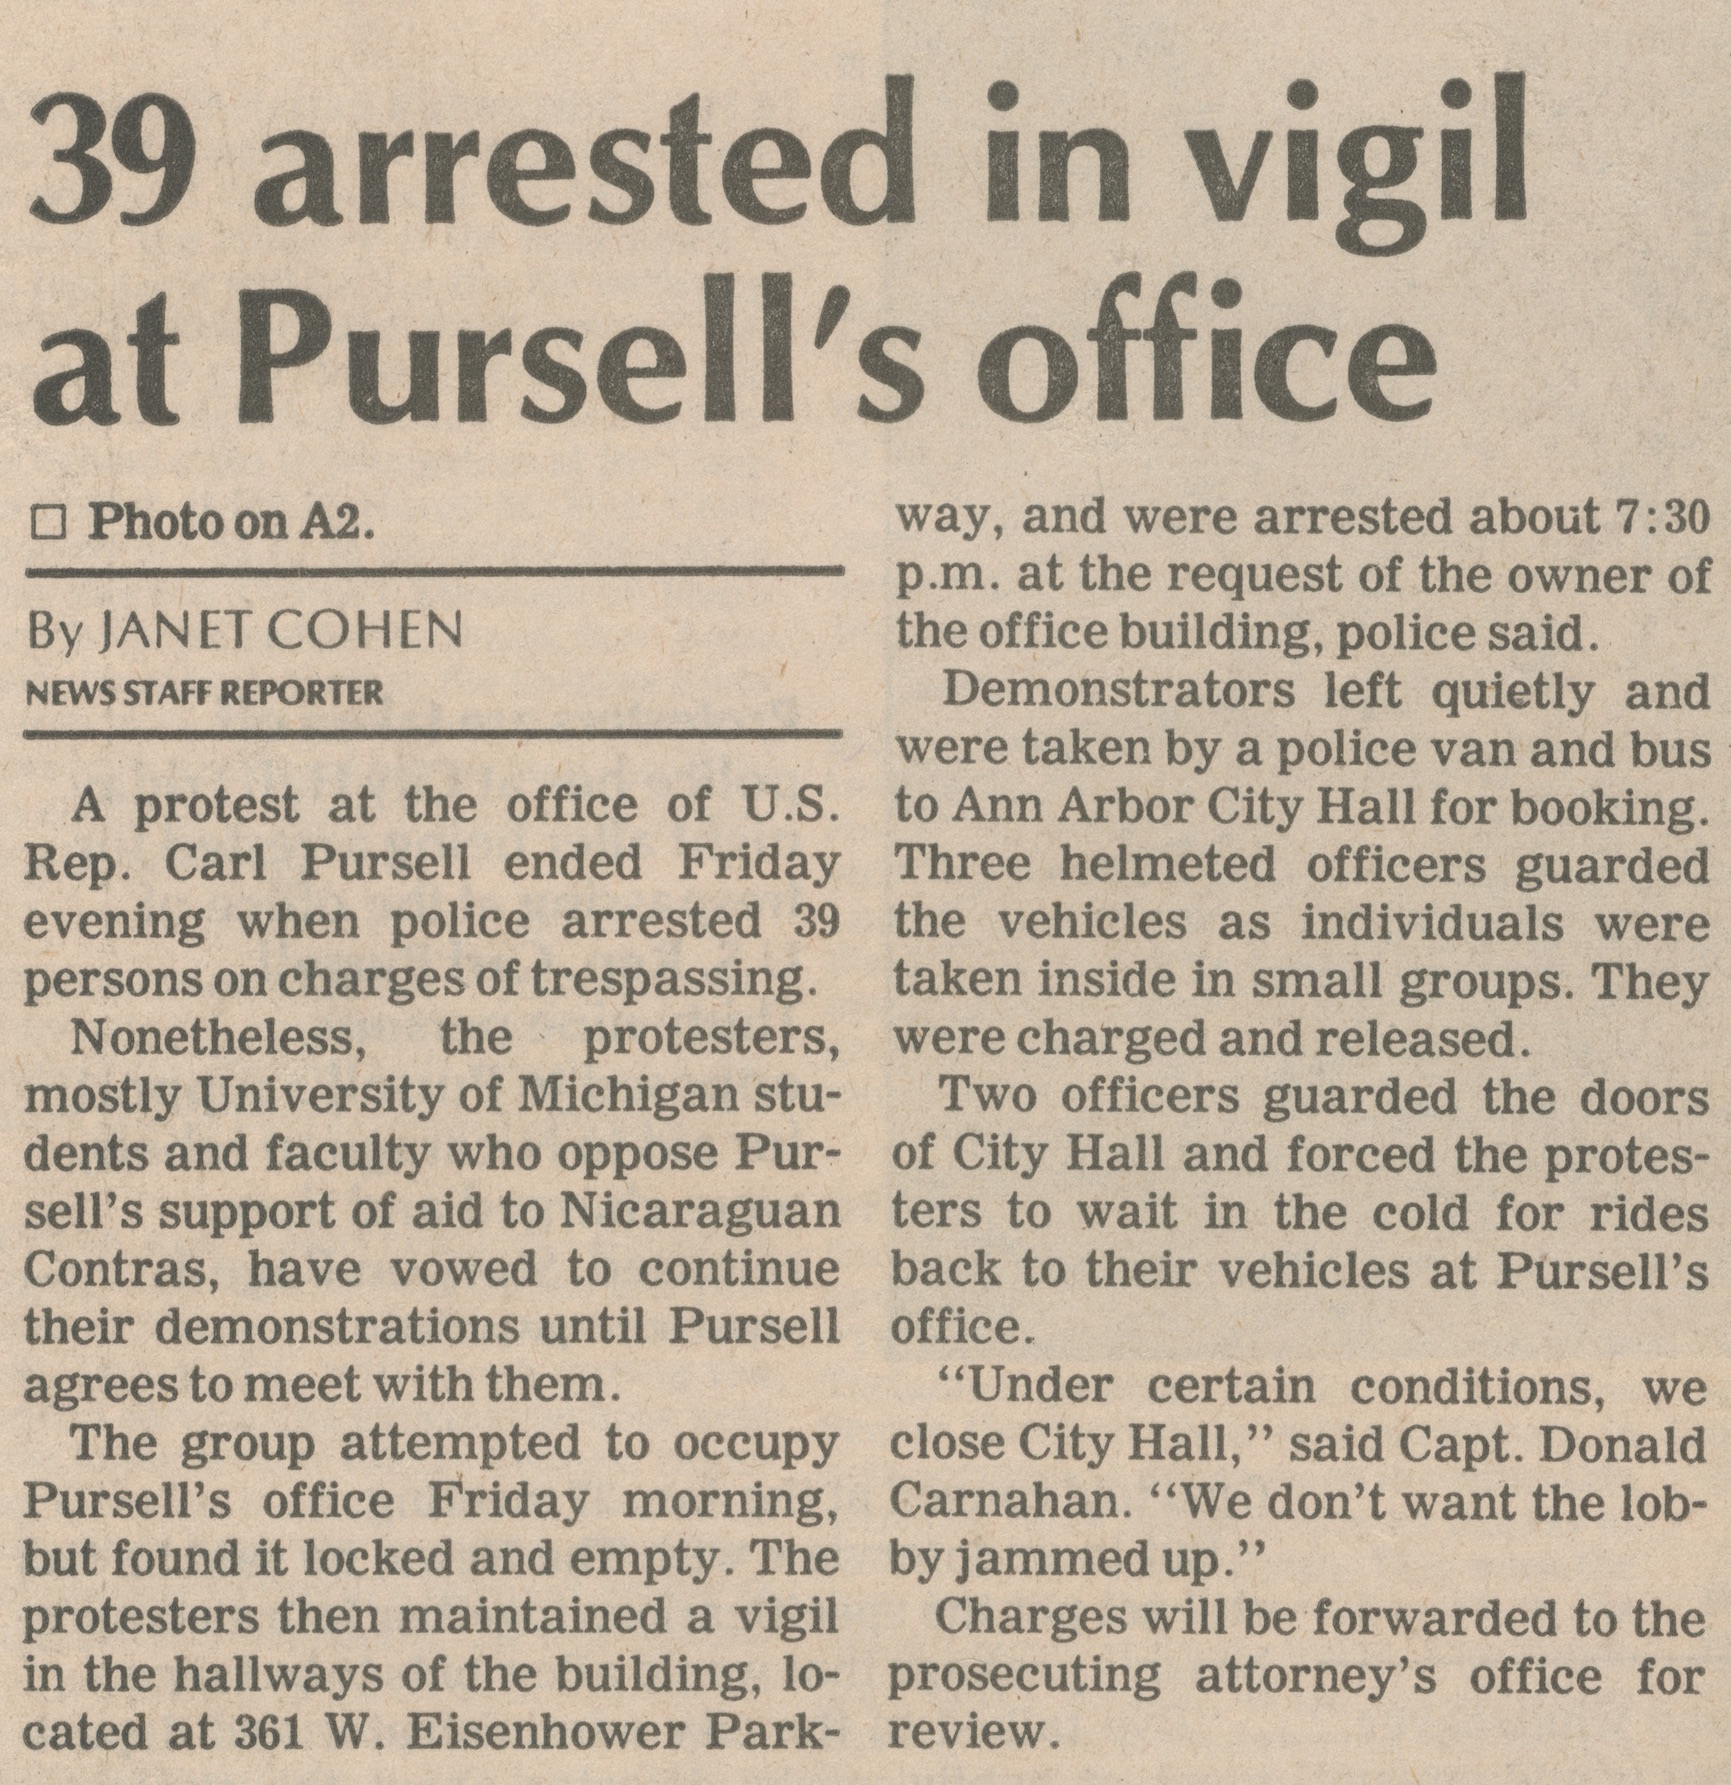 39 Arrested In Vigil At Pursell's Office image